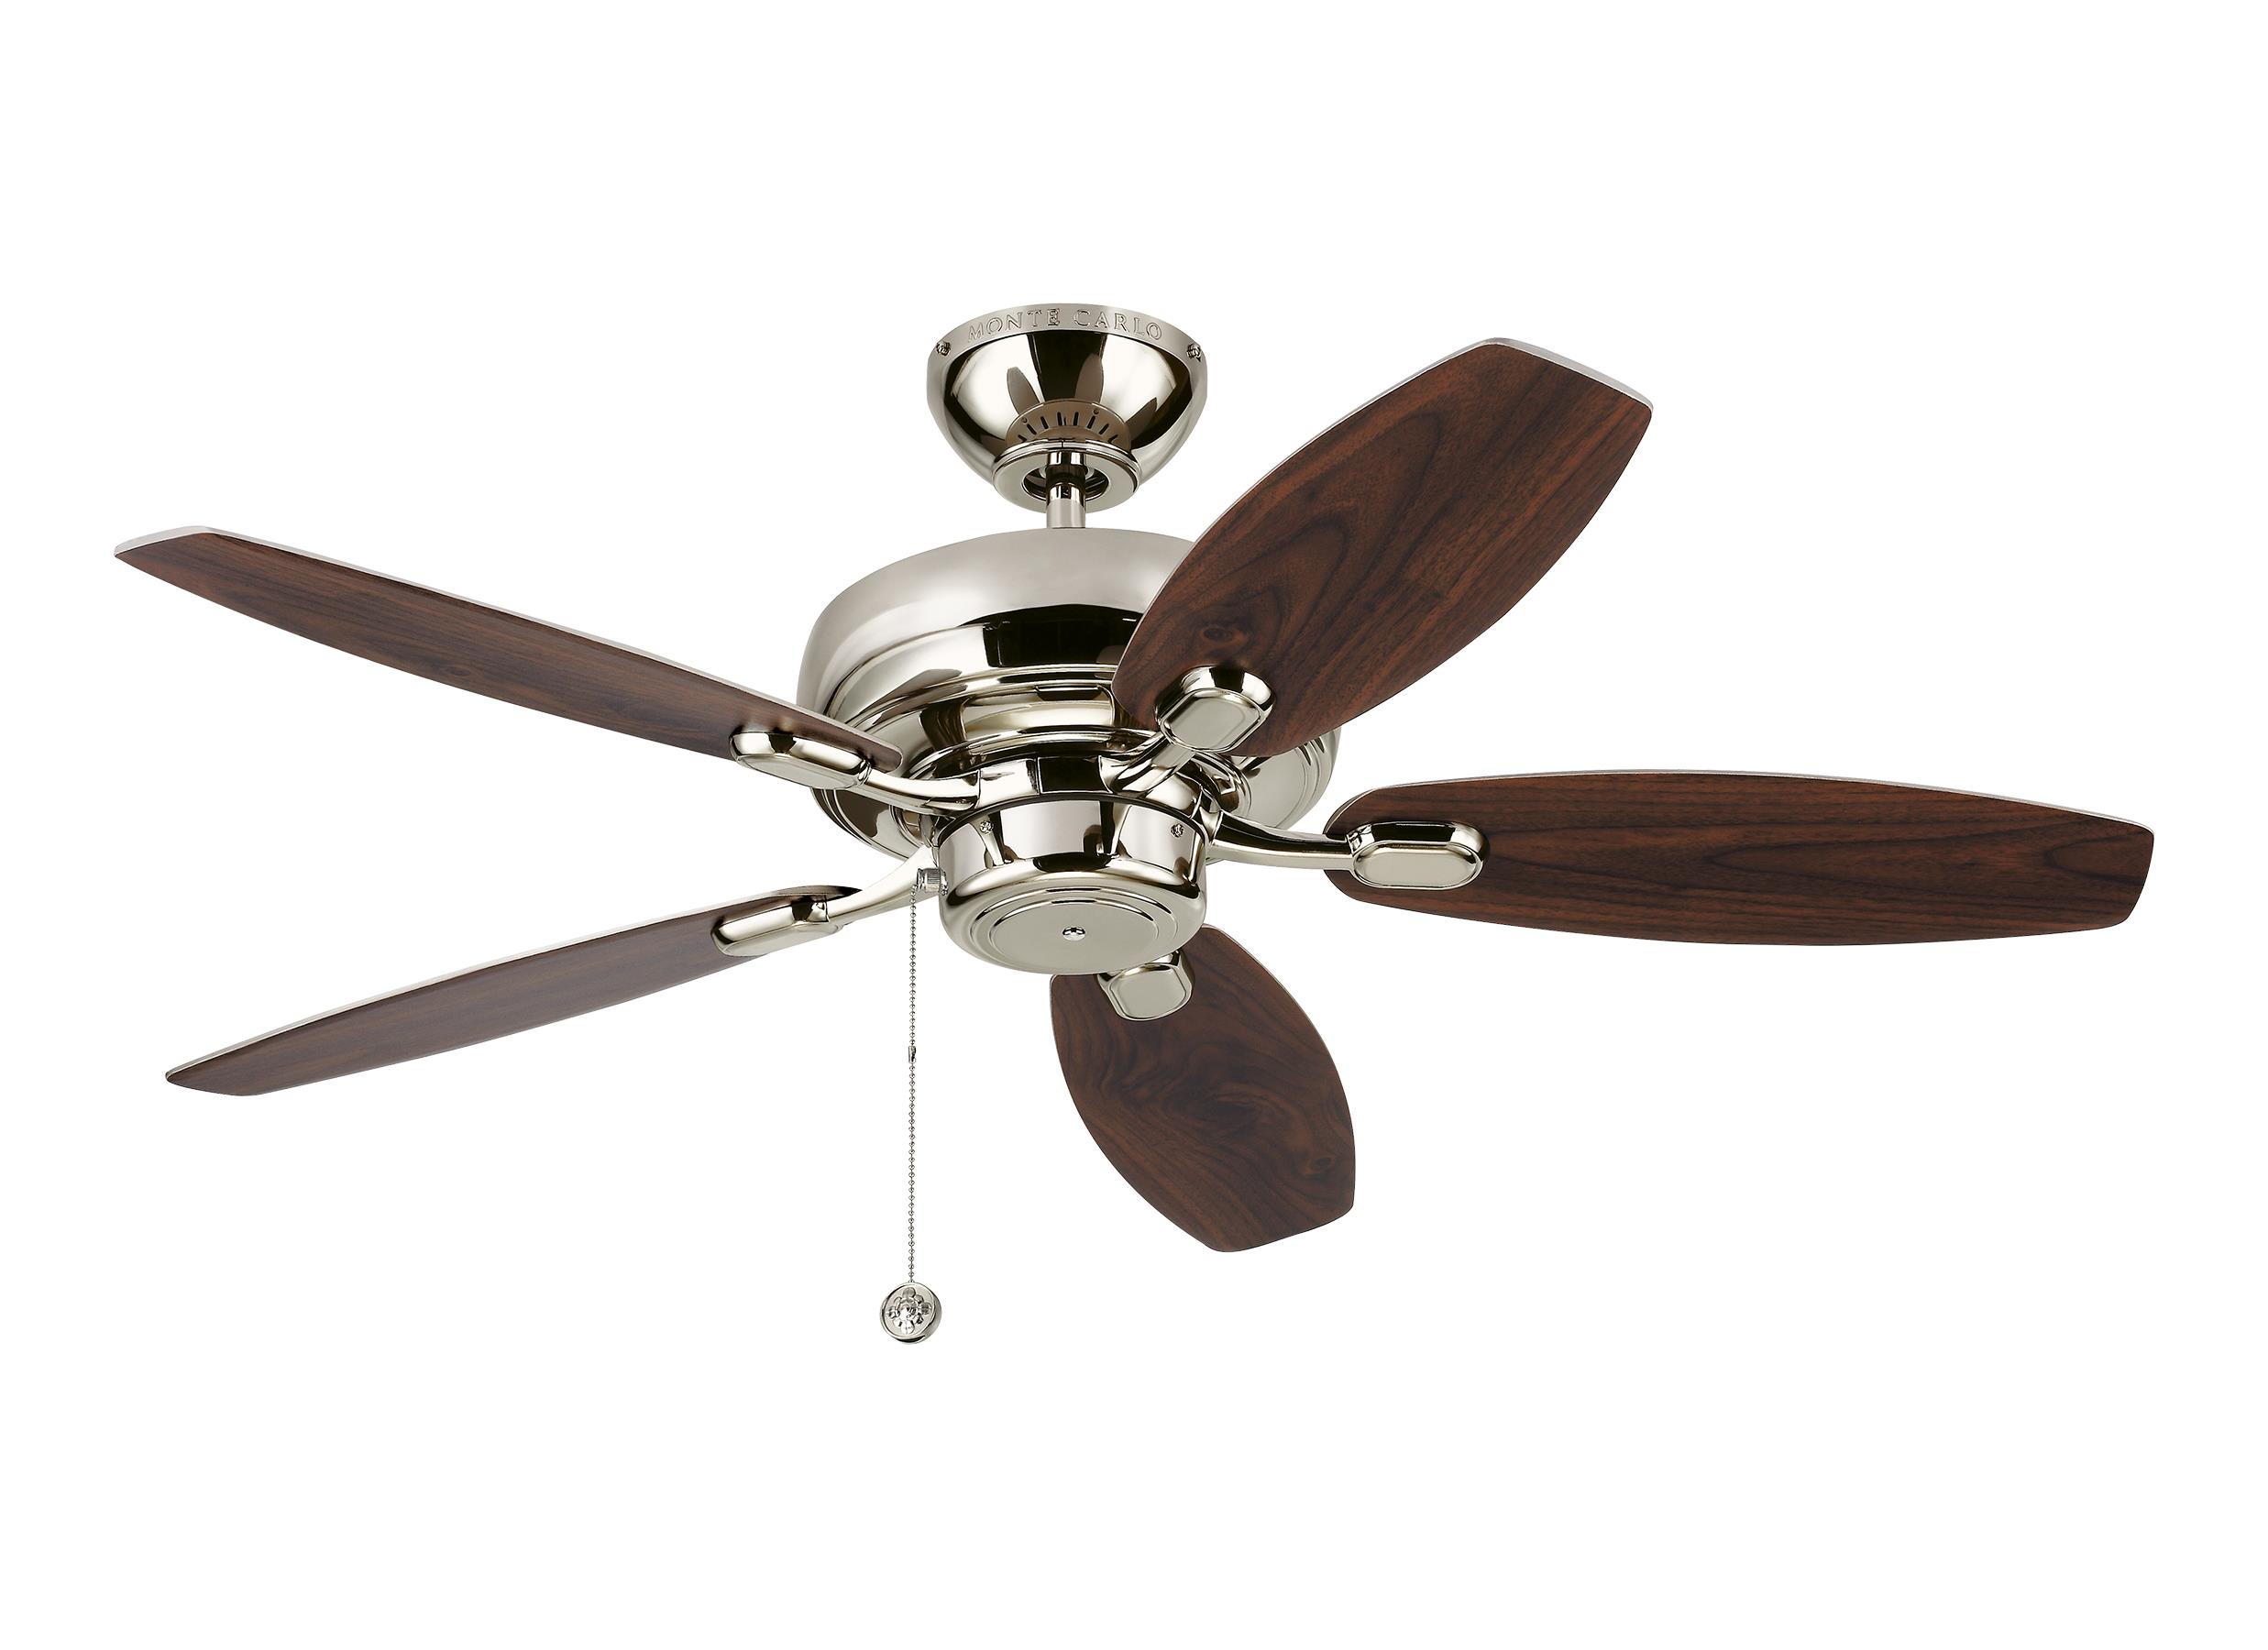 ventura ceilings fan inch list kendal fans bbz ceiling product